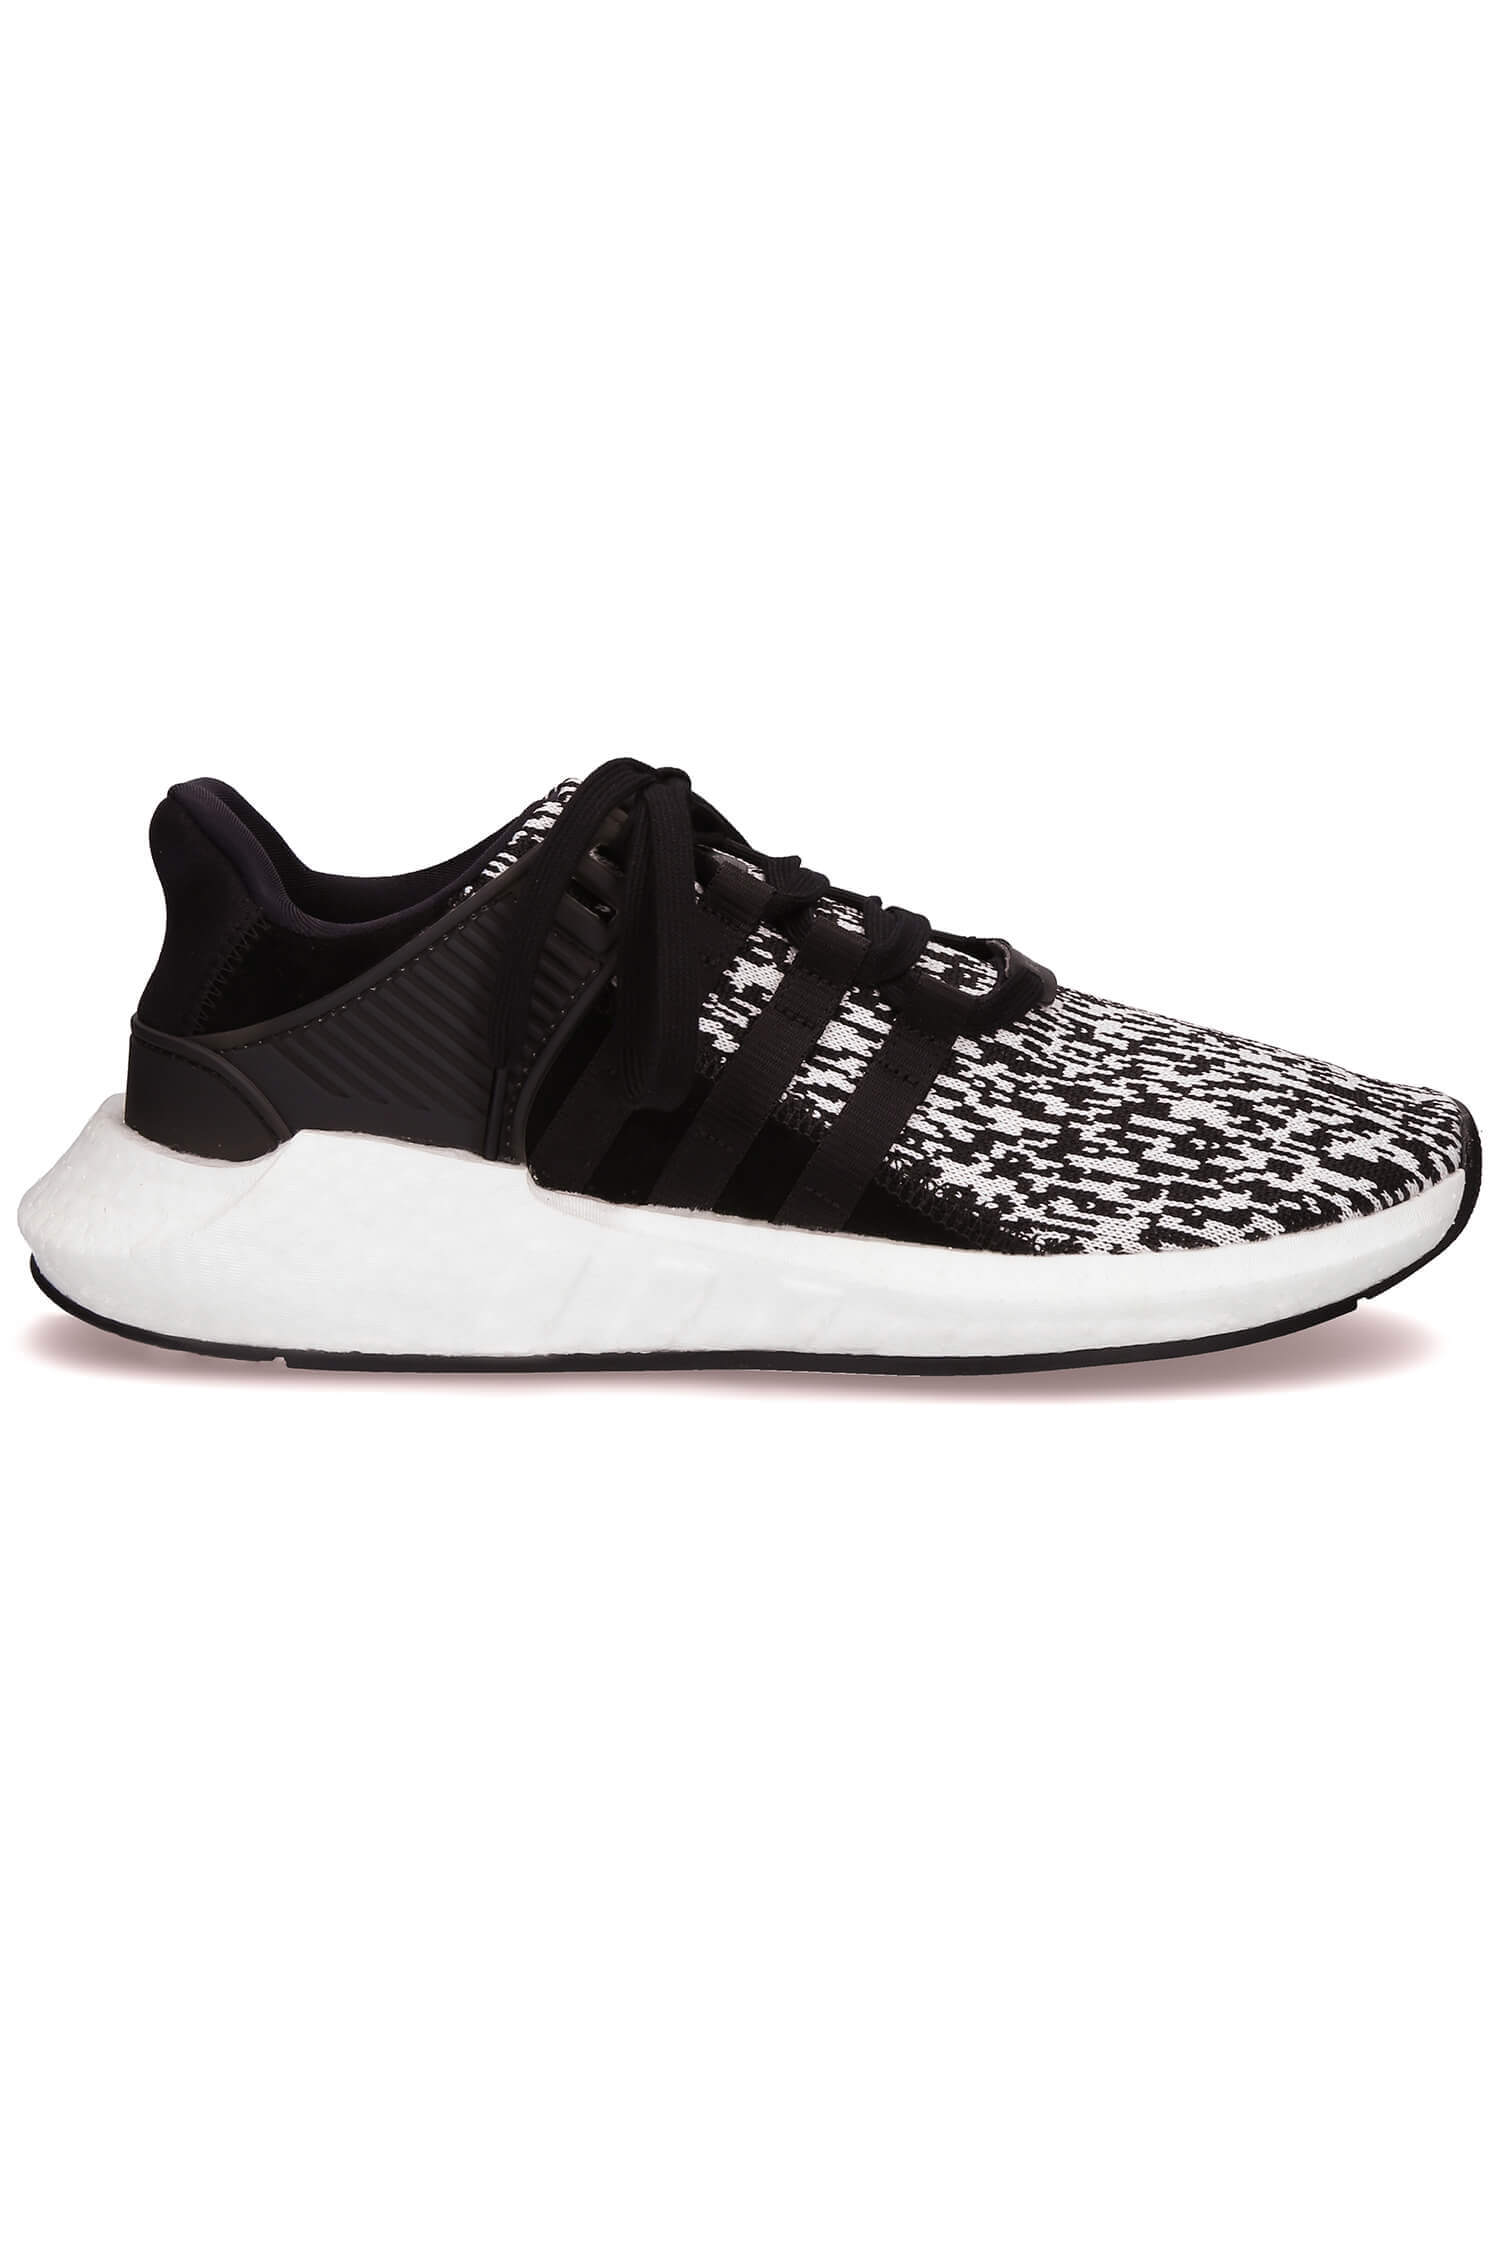 Eqt Eqt Adidas Support Originals Support 9317 dZpOwdq